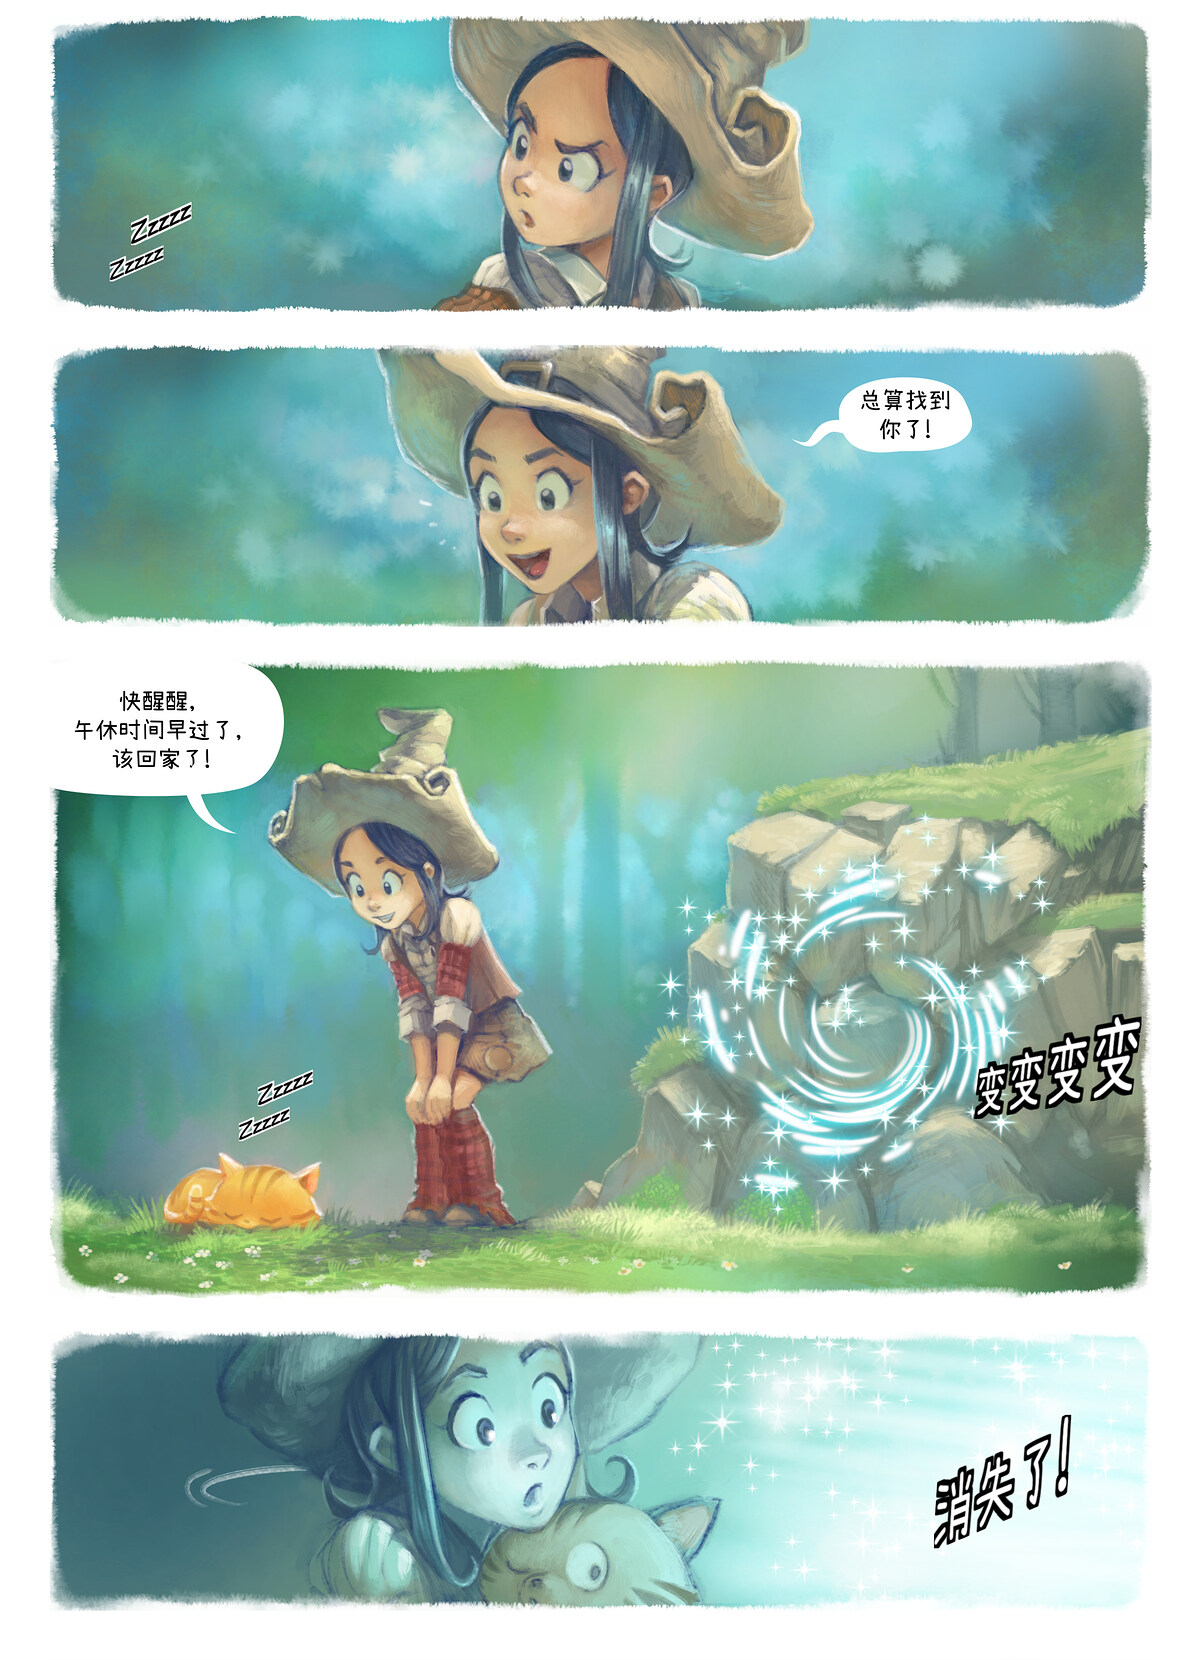 A webcomic page of Pepper&Carrot, 漫画全集 7 [cn], 页面 2